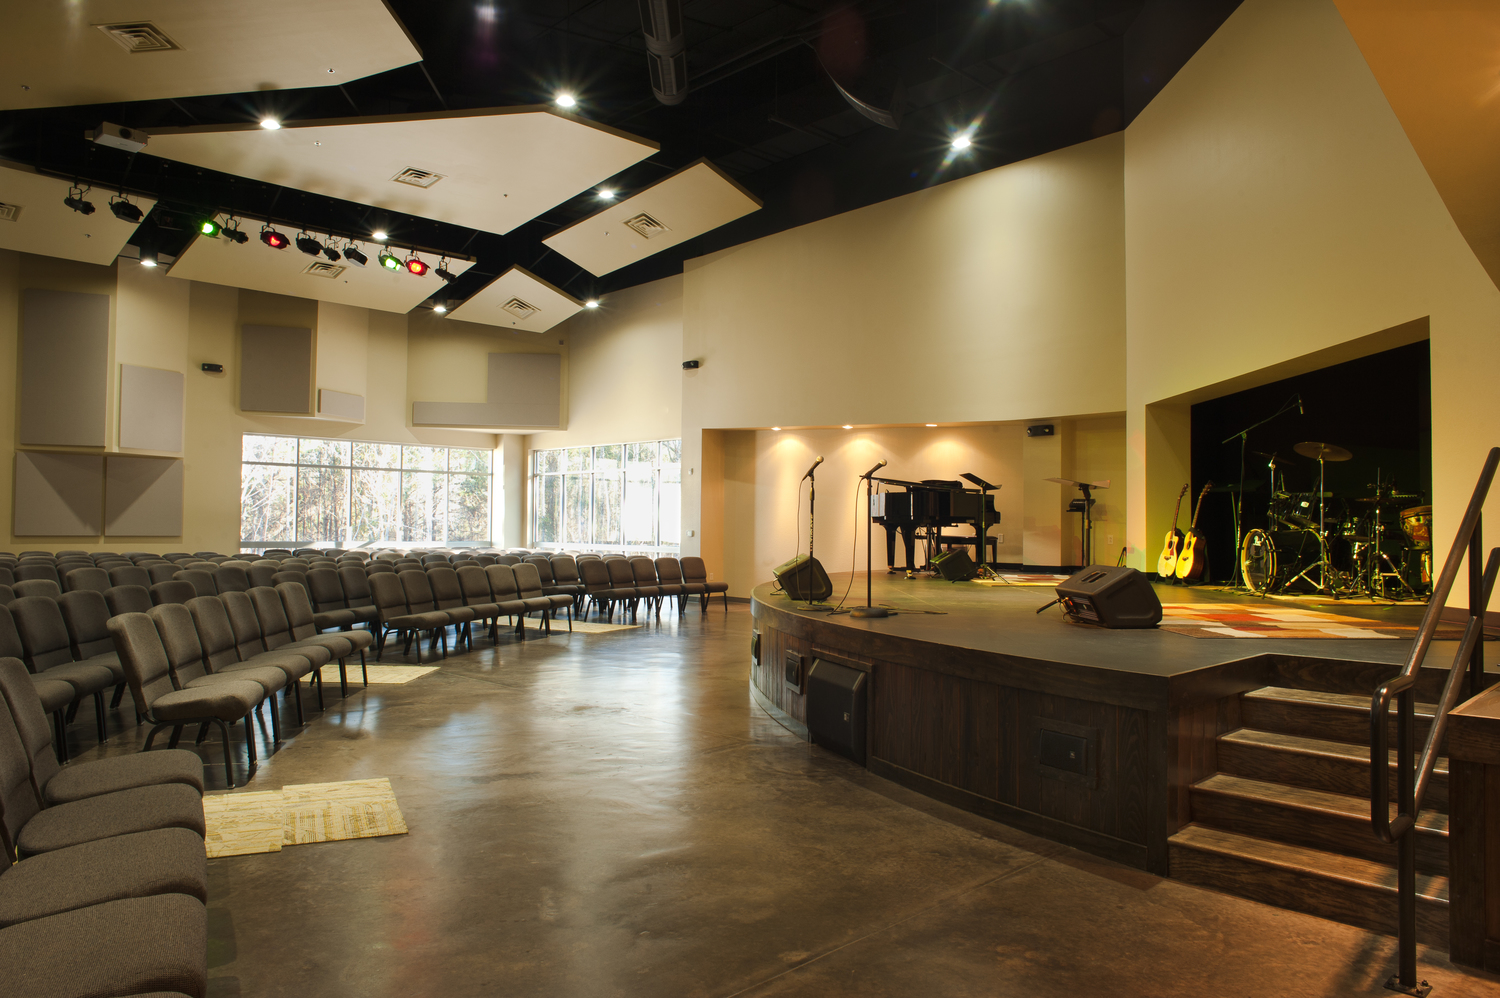 dayspring united methodist church architect - a church without walls concept - religious architect east texas - butler architectural group